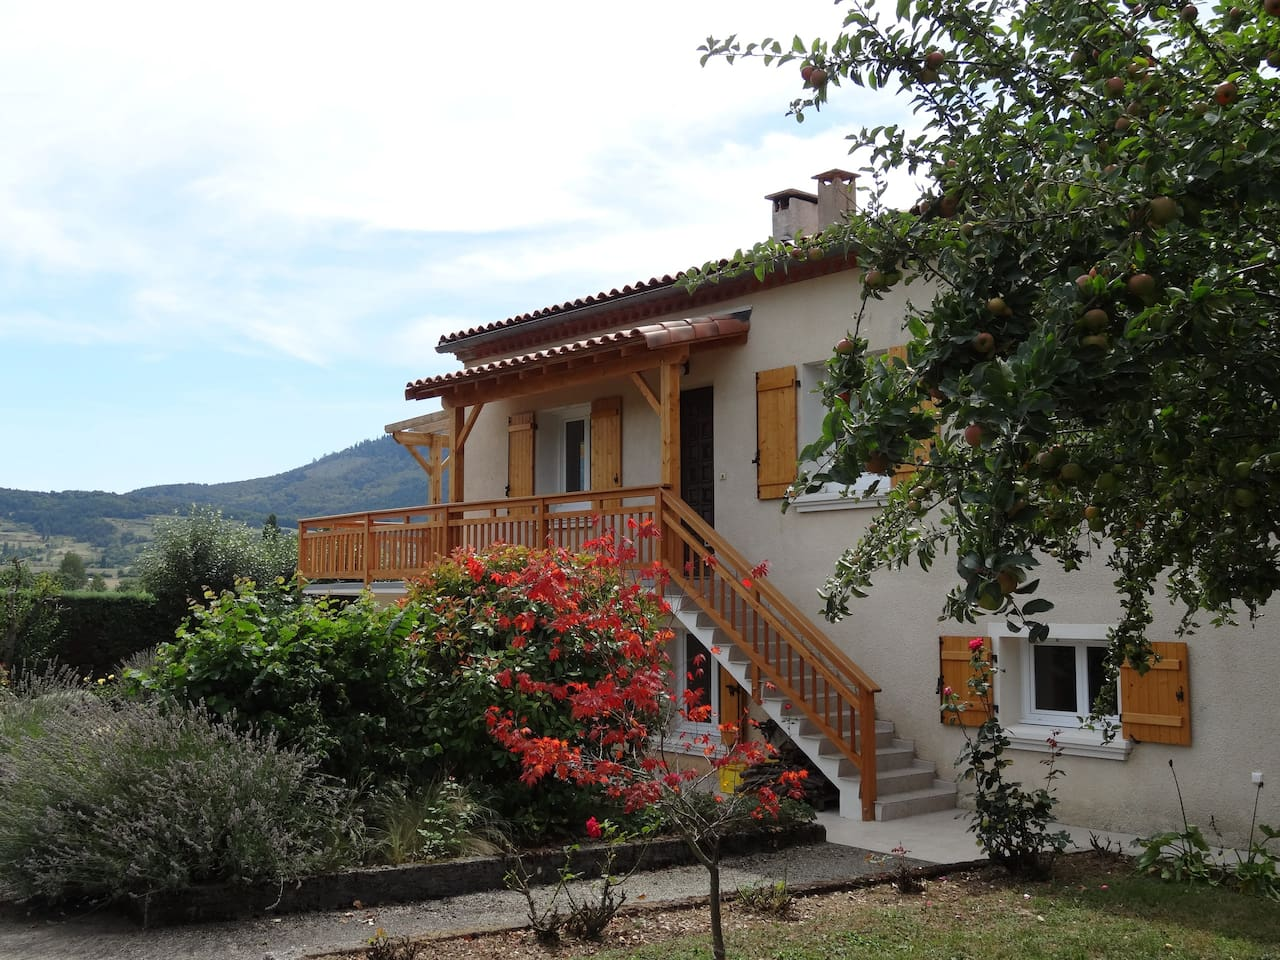 The House with the foothills of the Pyrenees in the background